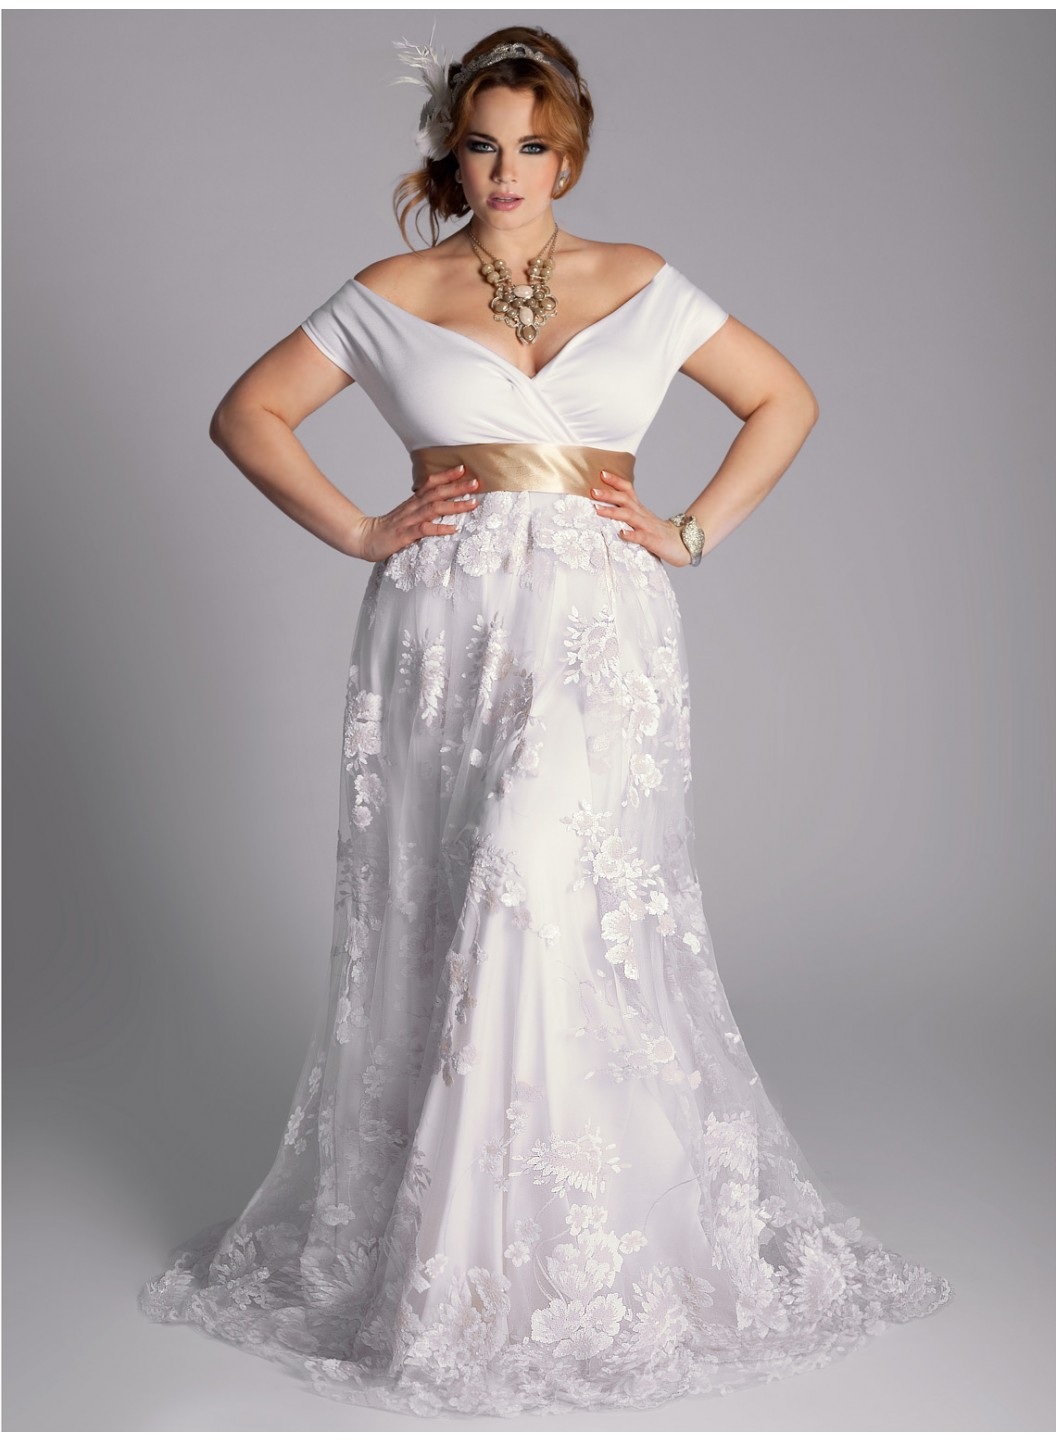 Plus Size Vintage Wedding Dresses: Plus Size Black Rockabilly Wedding Dresses At Reisefeber.org